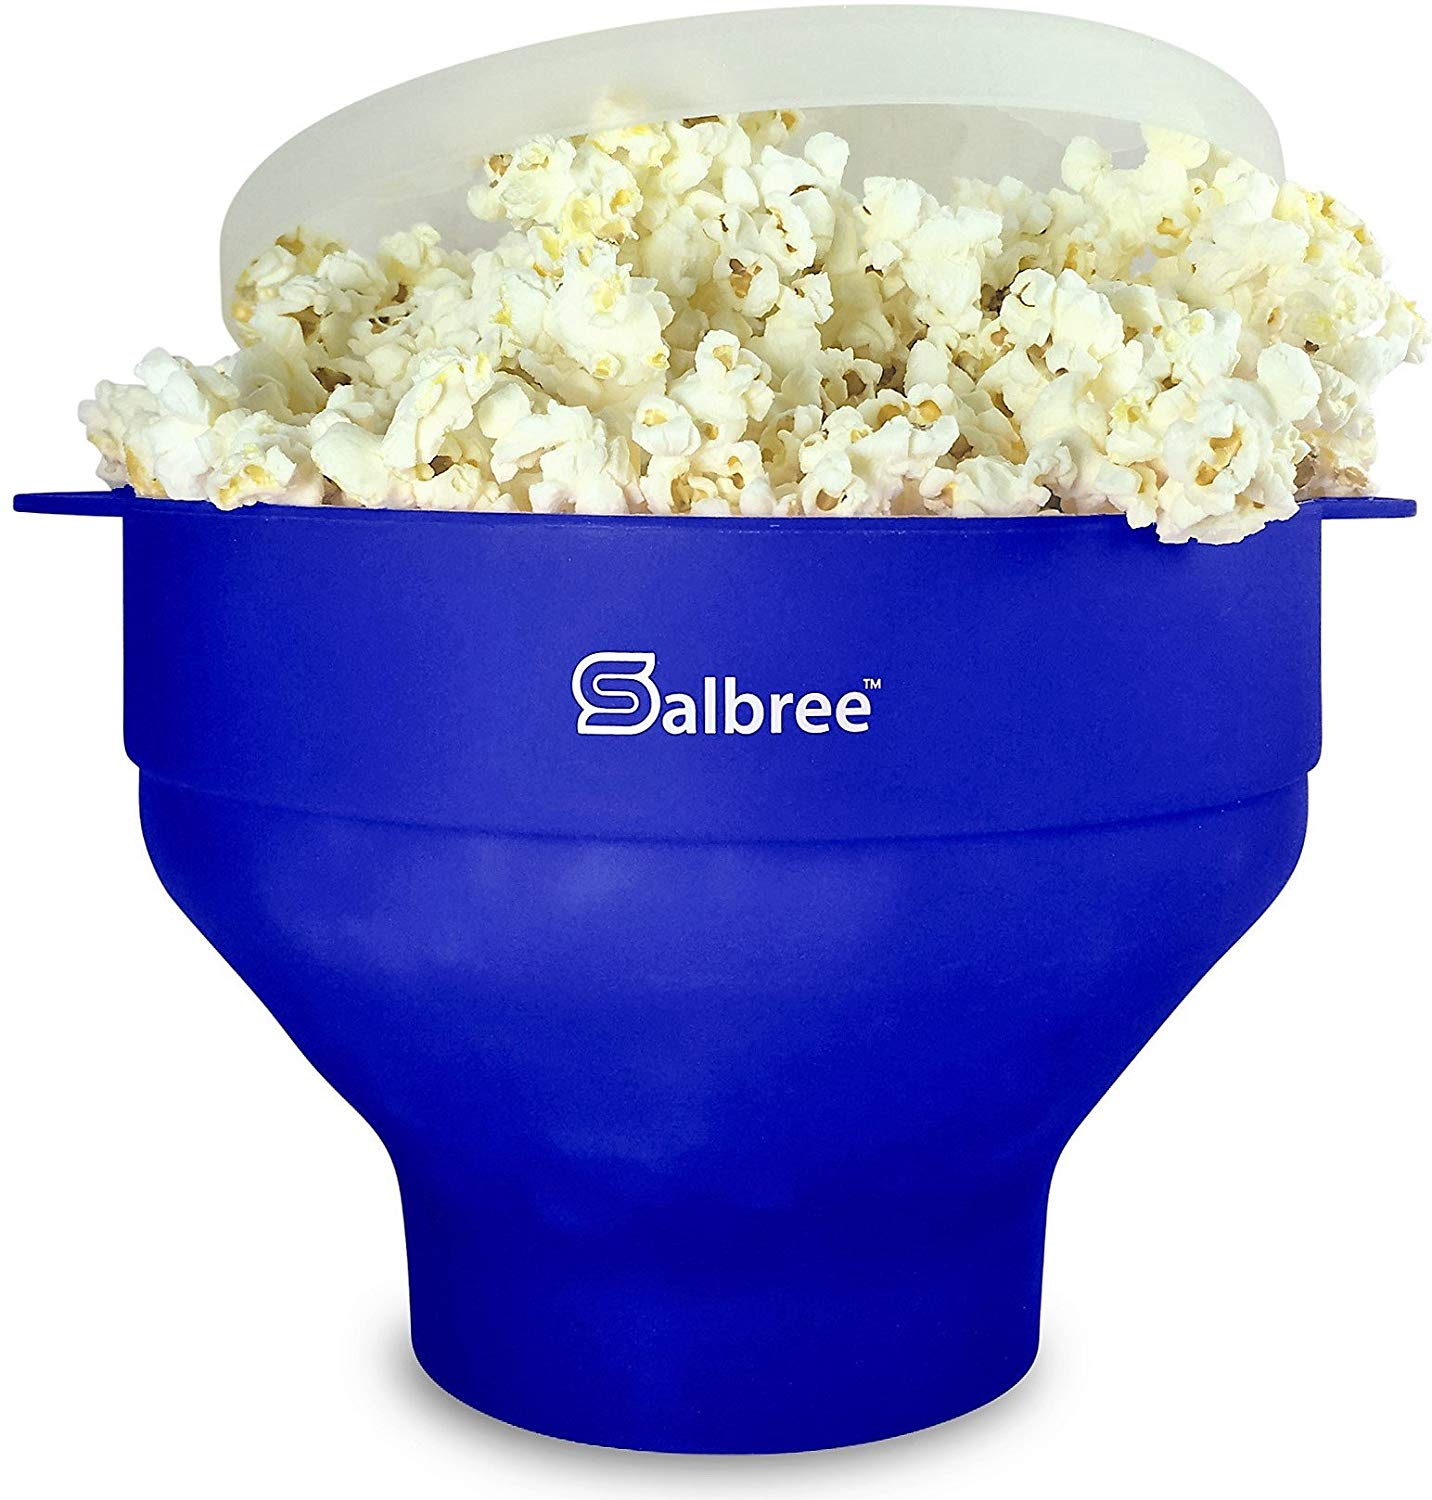 Salbree collapsible silicone microwave hot air popcorn popper bowl